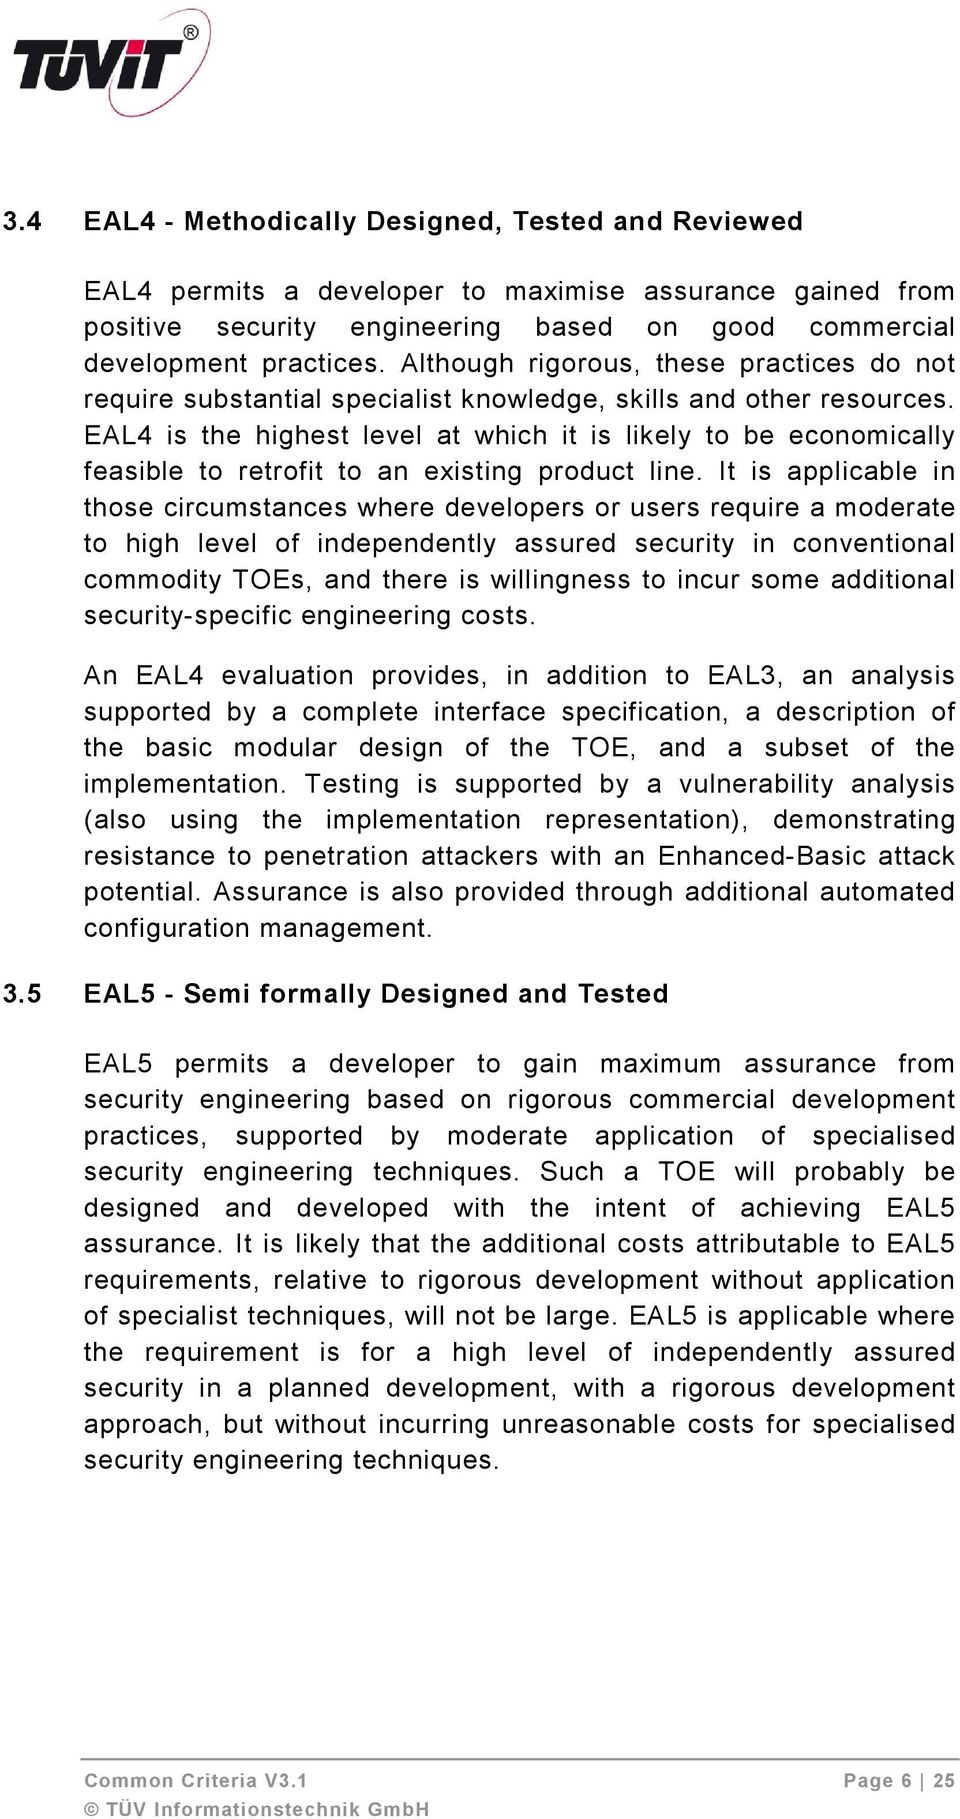 EAL4 is the highest level at which it is likely to be economically feasible to retrofit to an existing product line.